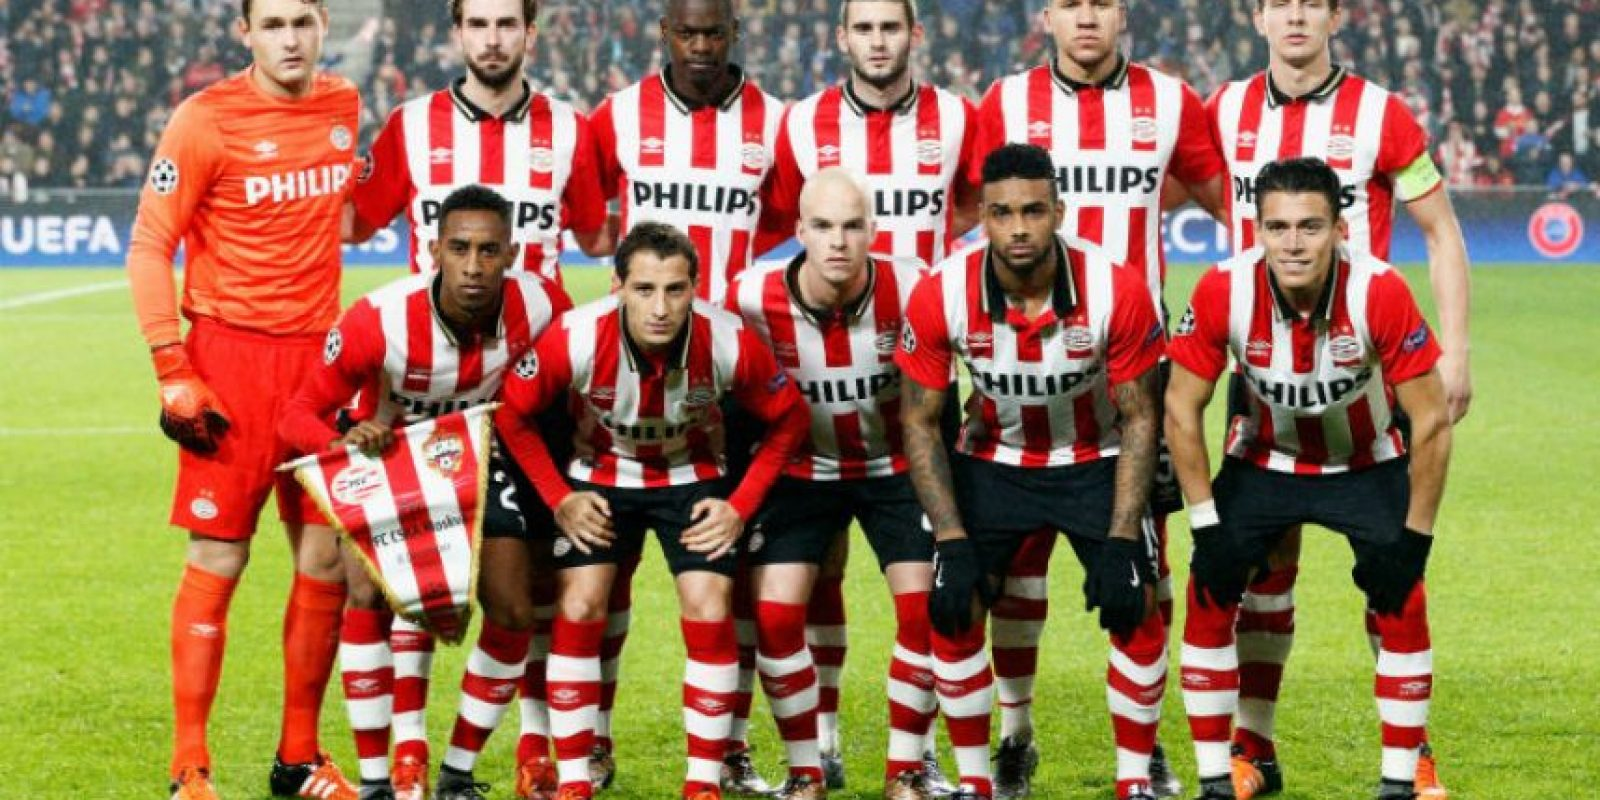 PSV Foto: Getty Images